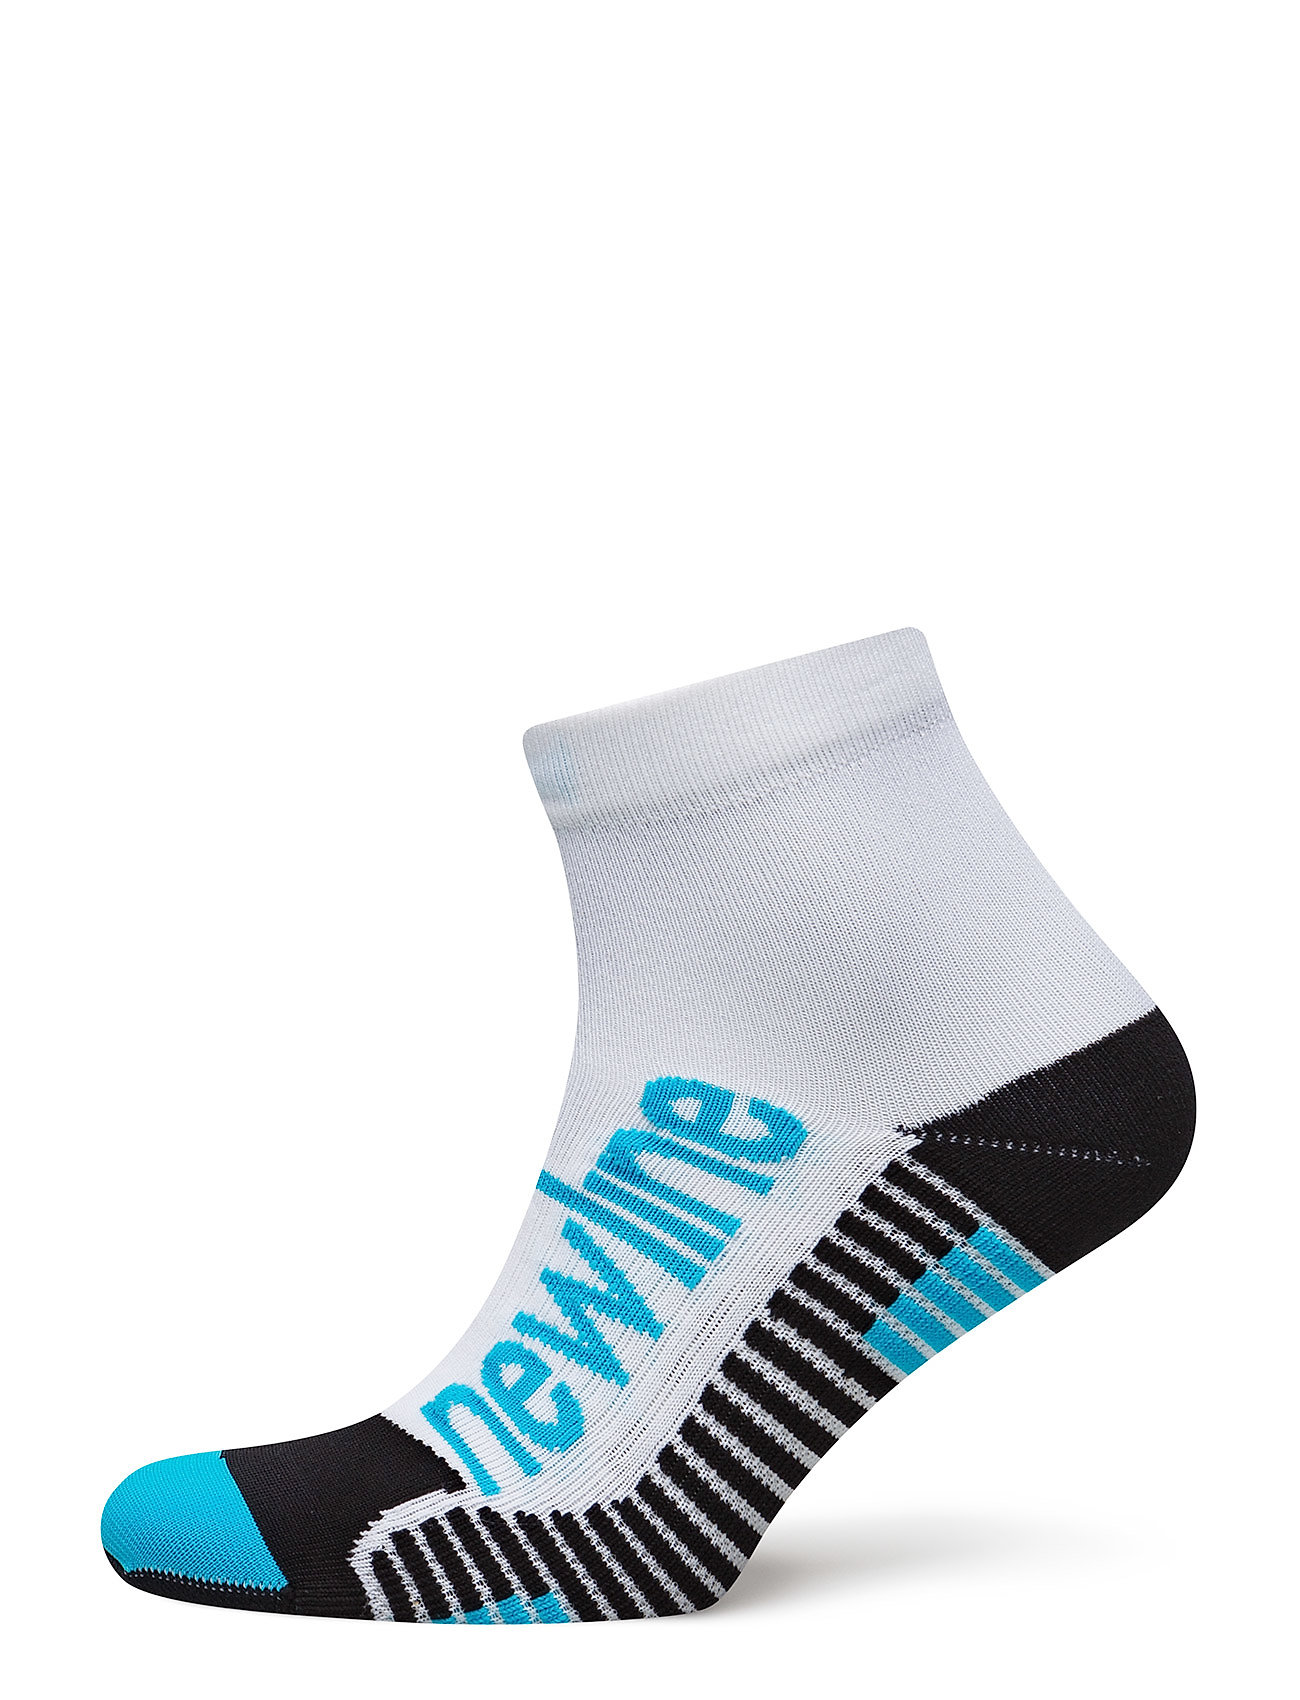 Newline Tech Sock - WHITE